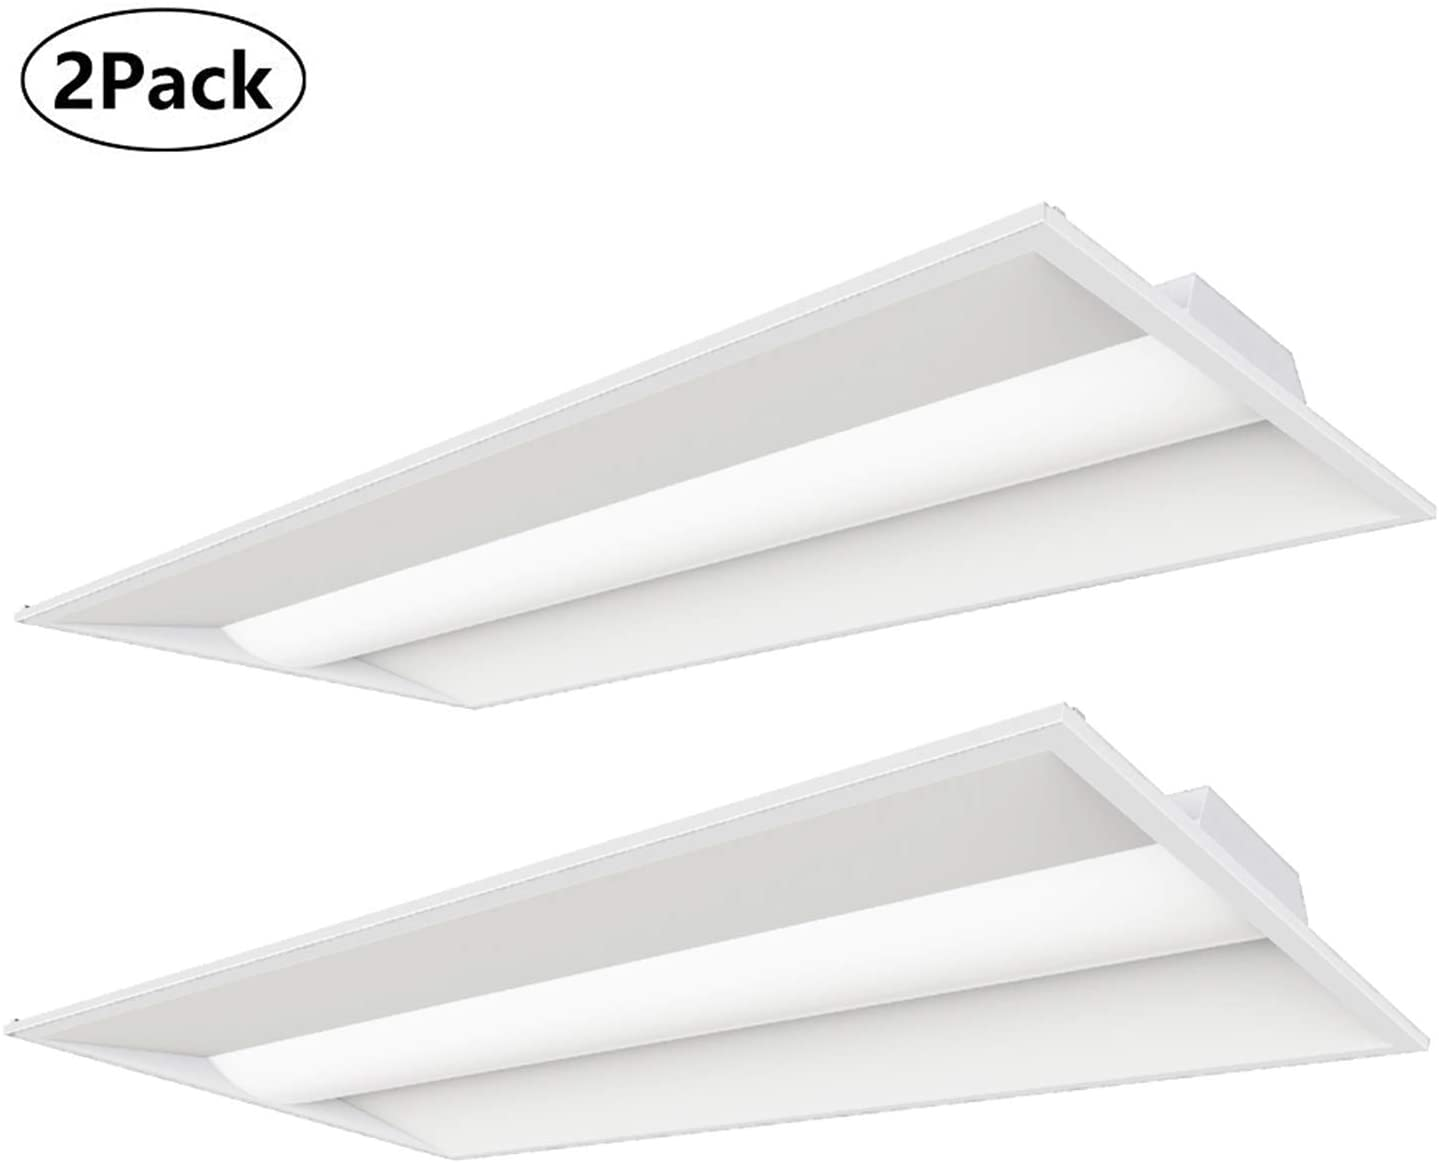 2PCS 2x4 FT LED Troffer 40W Light Fixture for Office Hospital 5000LM 4000K 0-10v Dimmer Control DLC UL Listed, 50,000 Life Hours